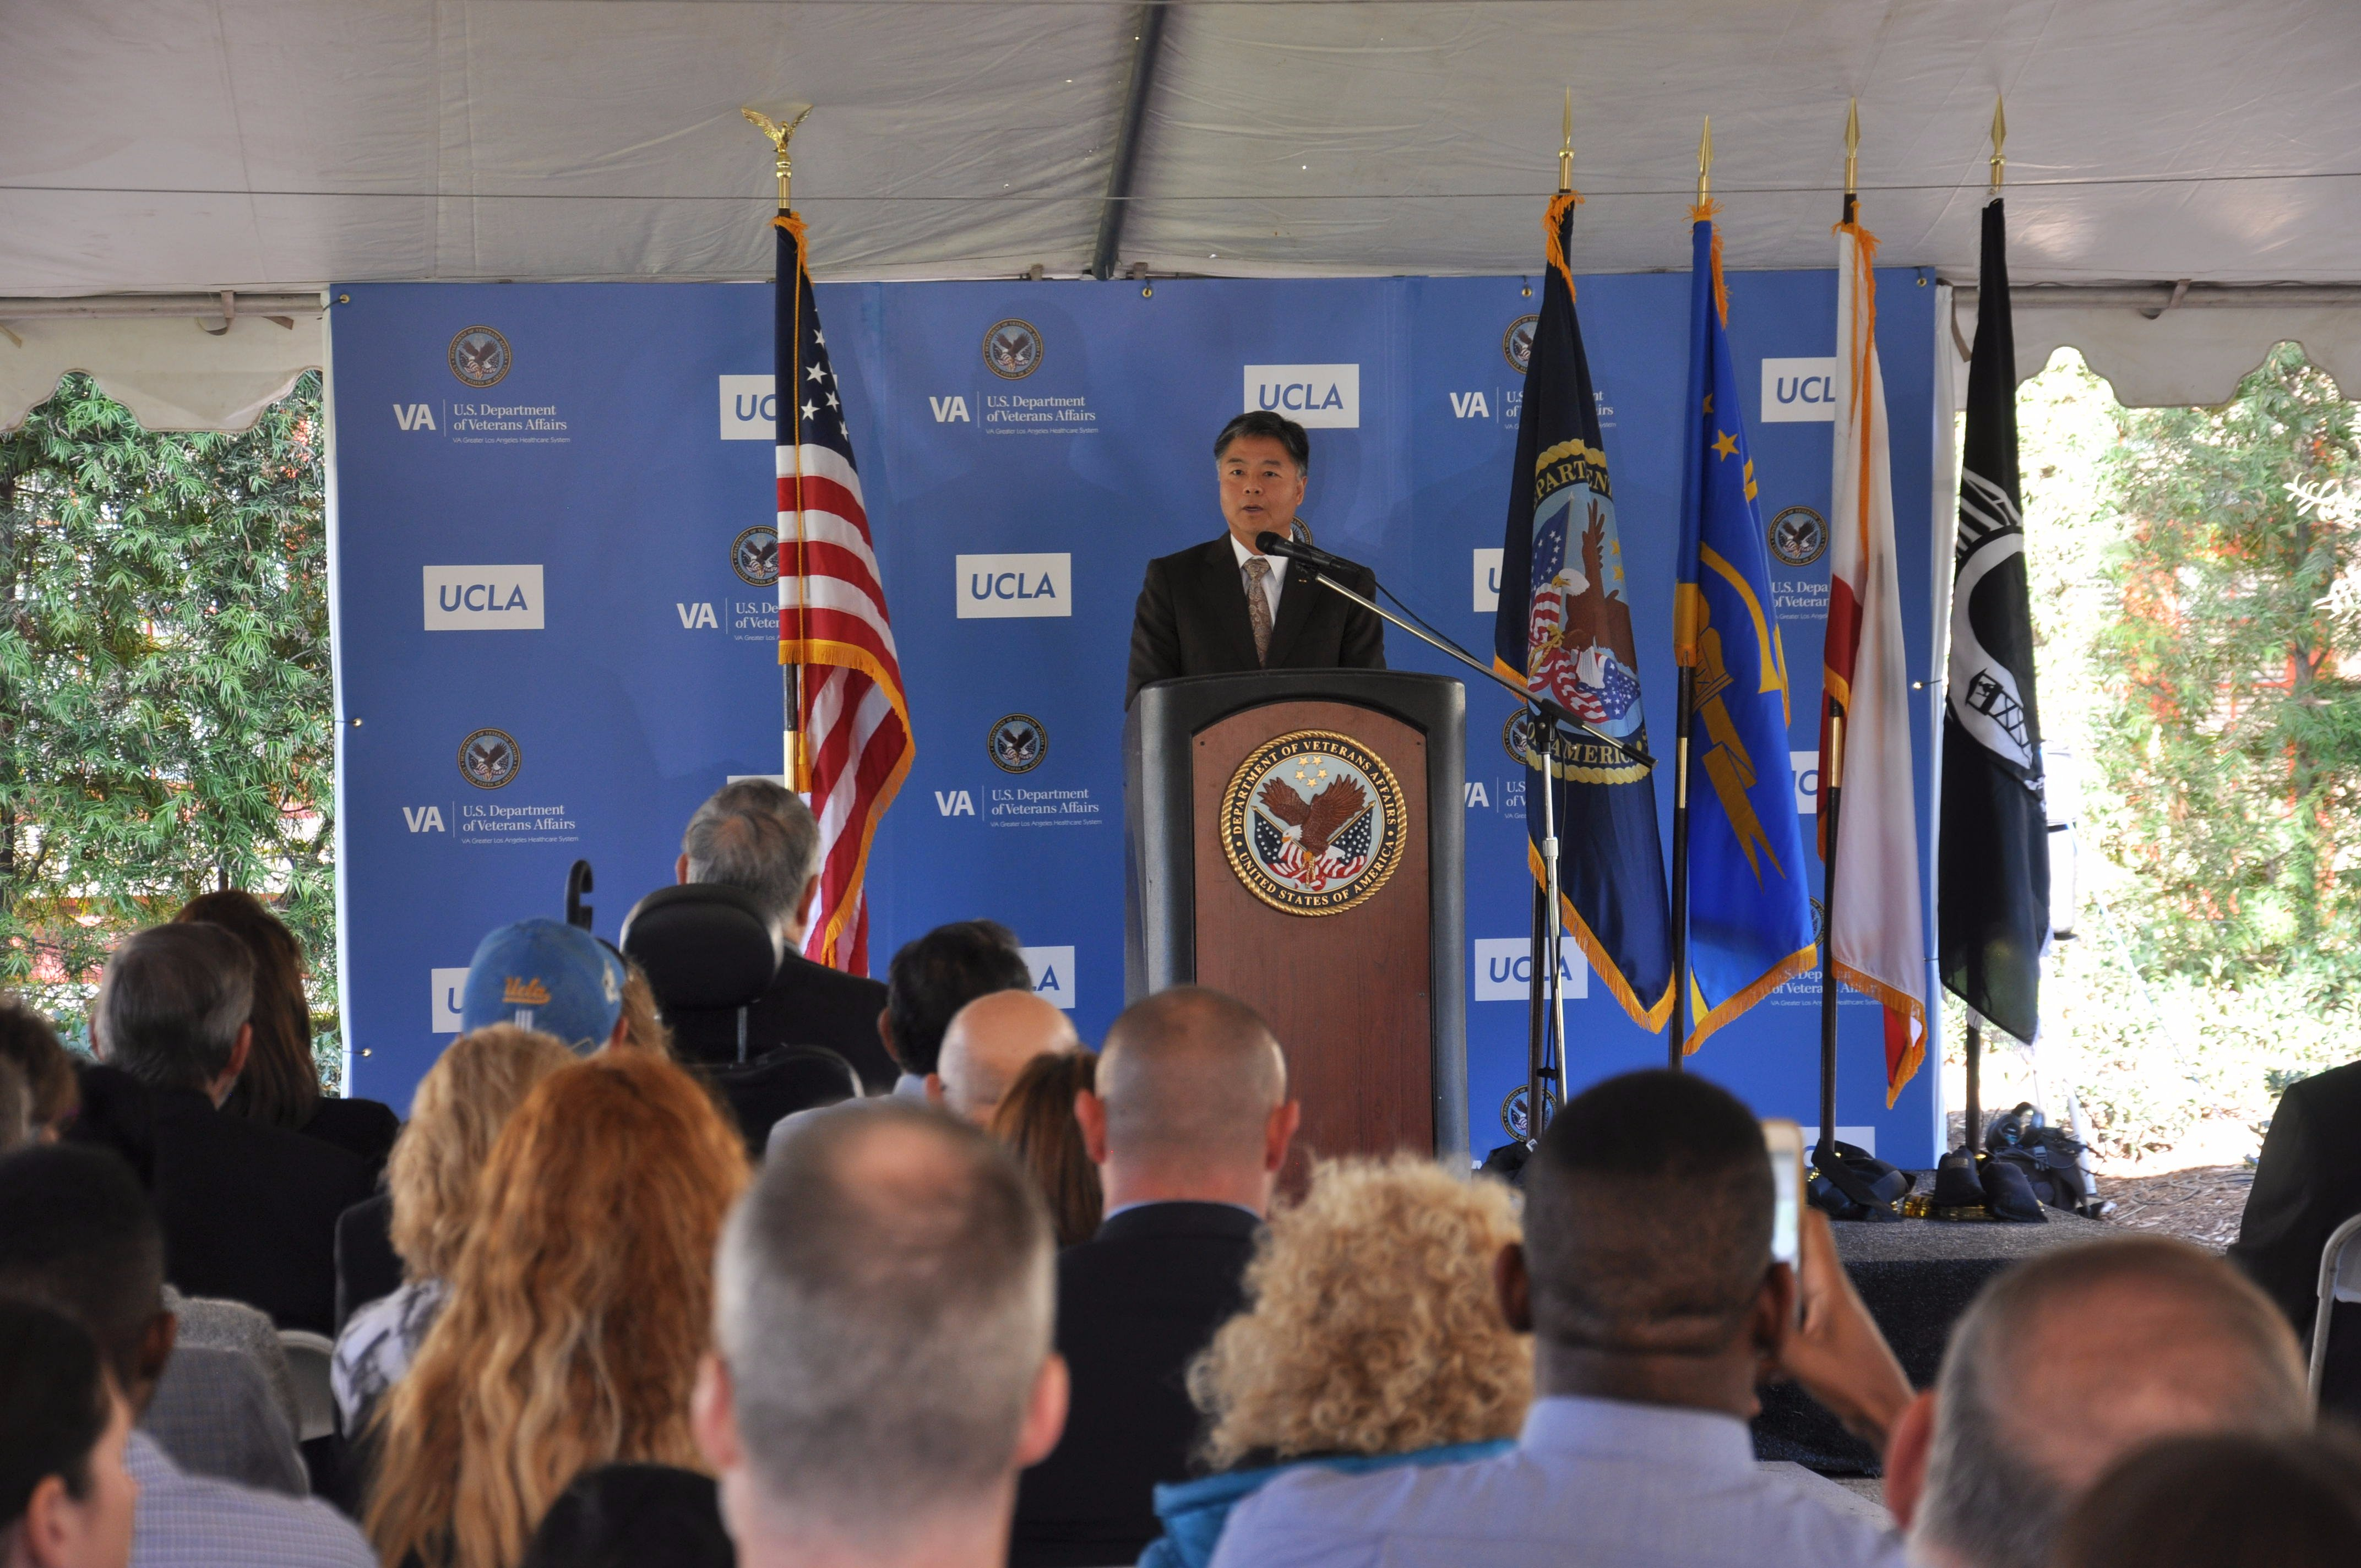 Rep. Lieu speaks before audience at UCLA/VA clinic opening